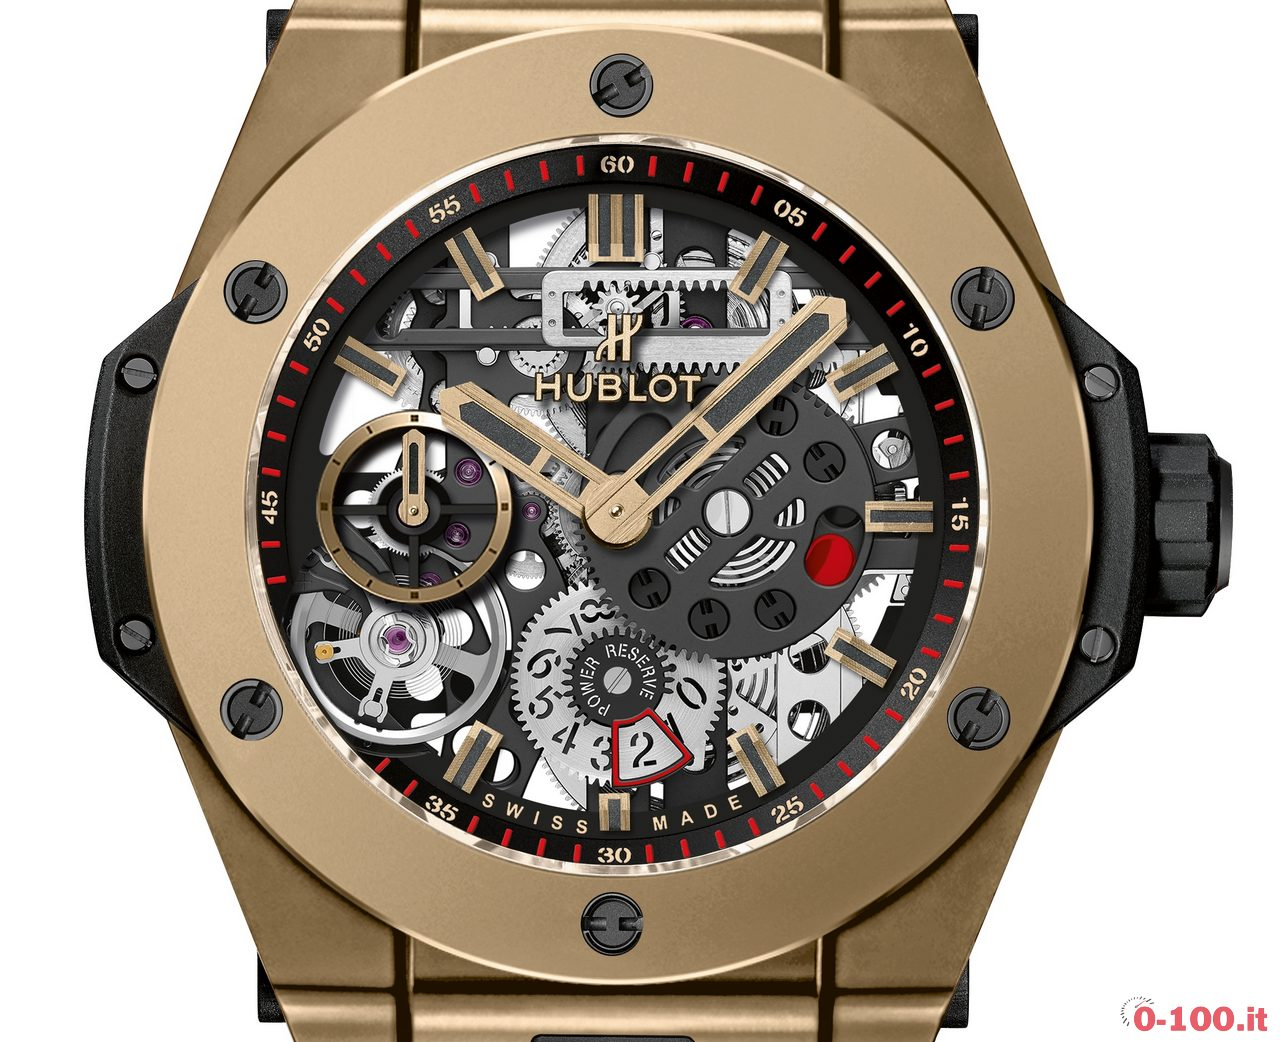 preview-geneve-2017-hublot-big-bang-meca-10-magic-gold-limited-edition-ref-414-mx-1138-rx-prezzo-price_0-1002